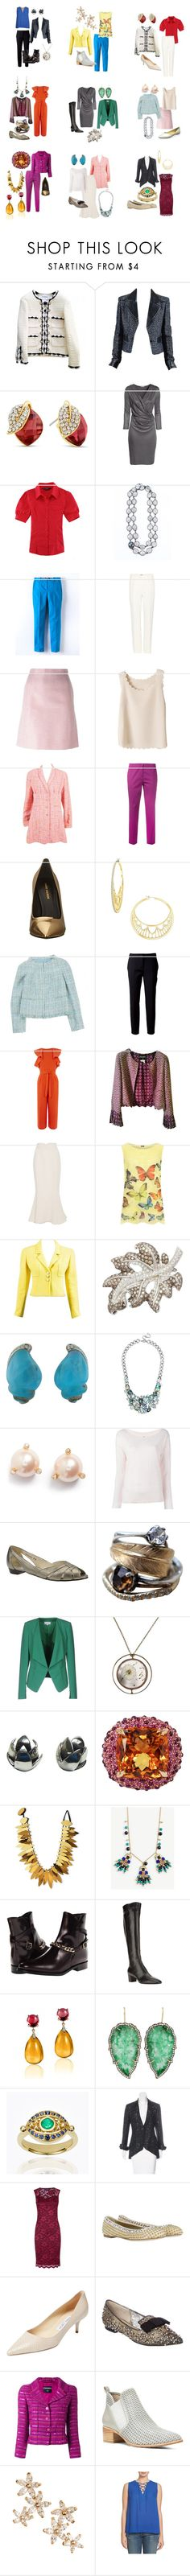 """FB9 office wear ideas"" by confluence ❤ liked on Polyvore featuring Chanel, Adoriana, WithChic, Bettina Duncan, Boden, Bottega Veneta, Etro, Pierre Balmain, Swarovski and N°21"